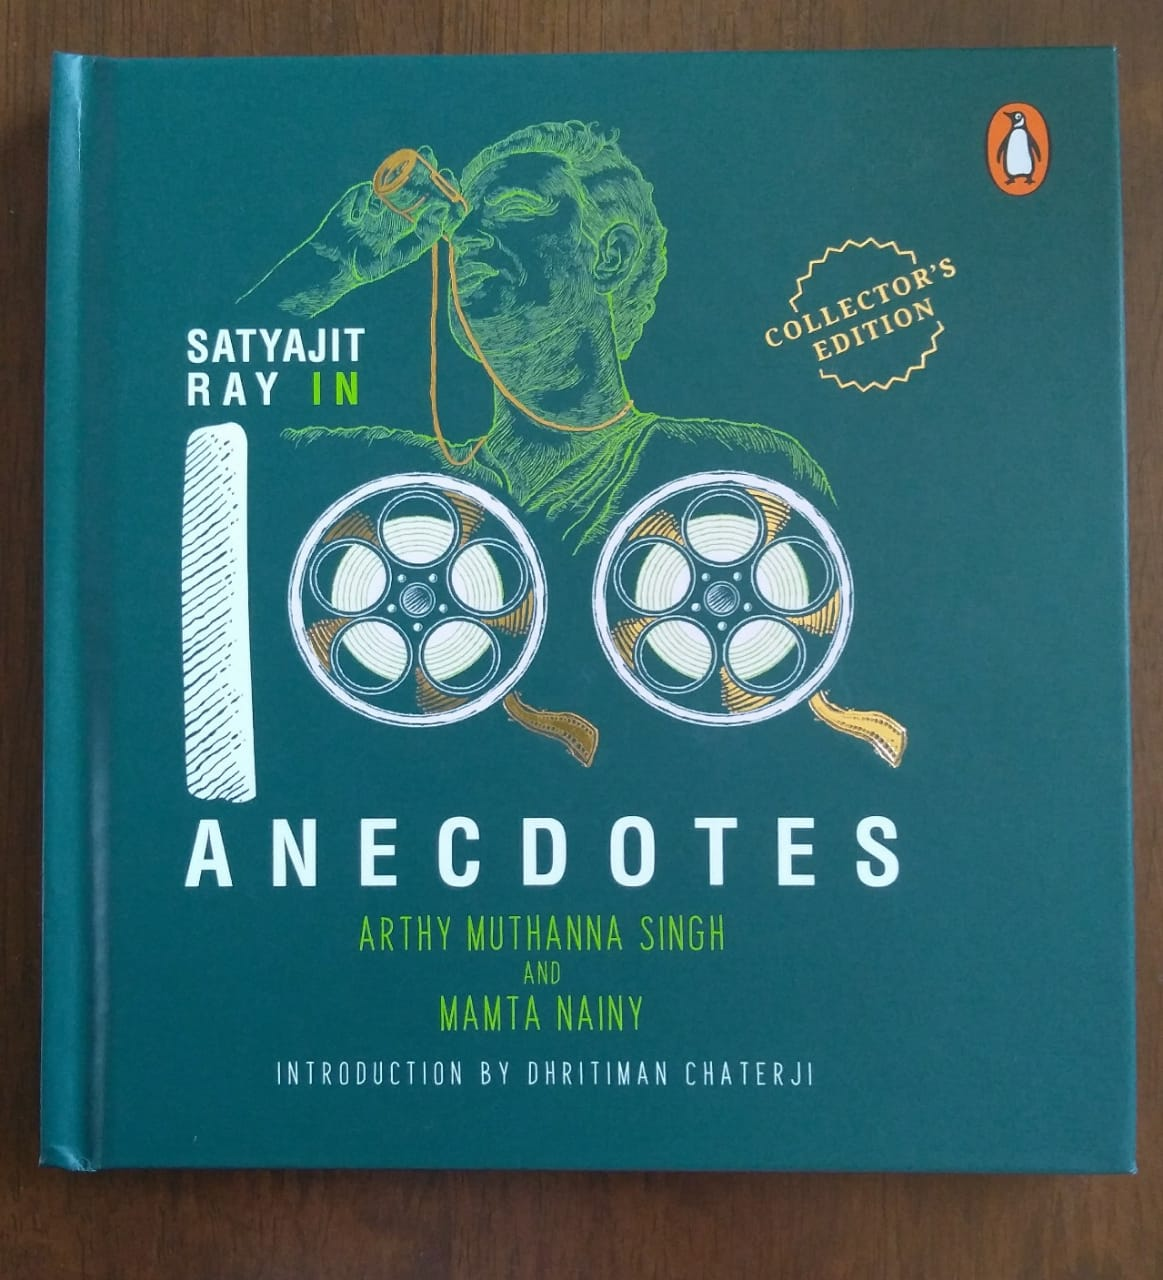 Review: Satyajit Ray In 100 Anecdotes: A Collector's Edition